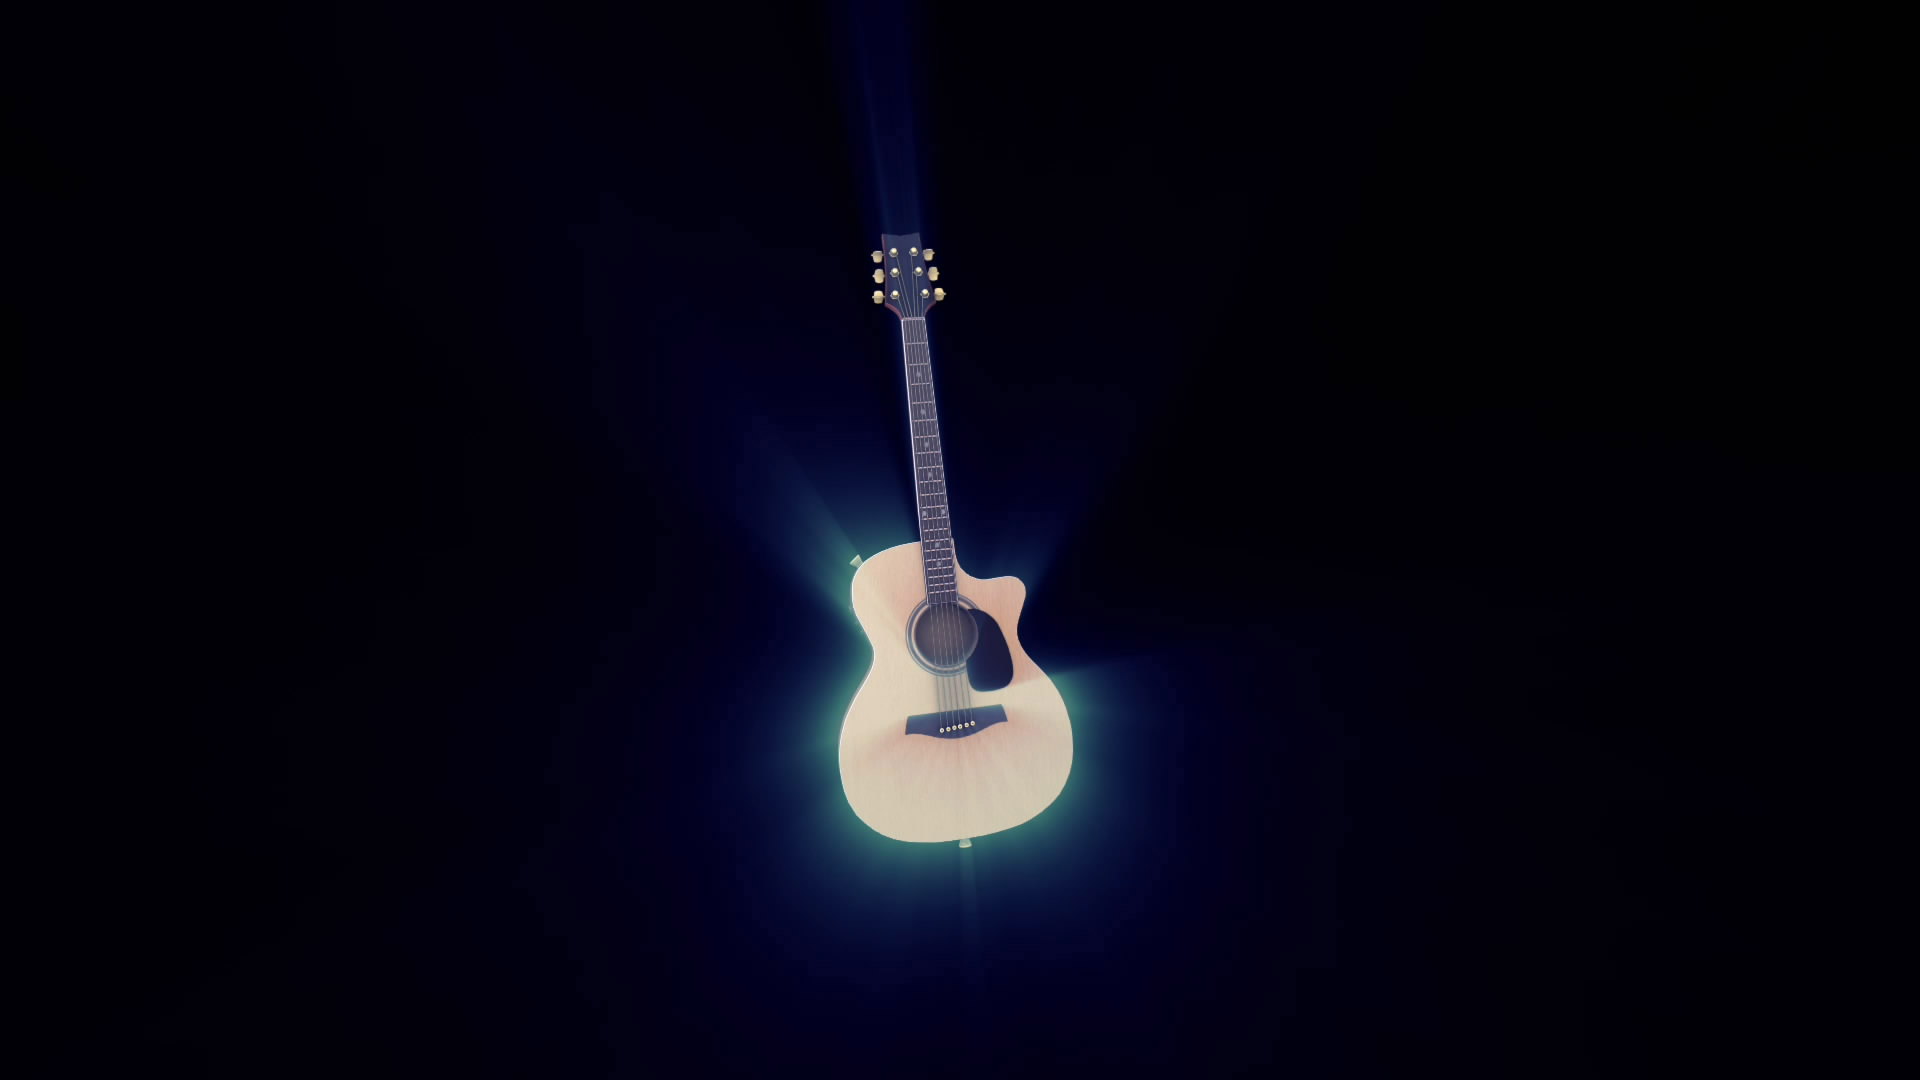 Moon Wallpaper Hd Guitar Free Stock Photo Public Domain Pictures